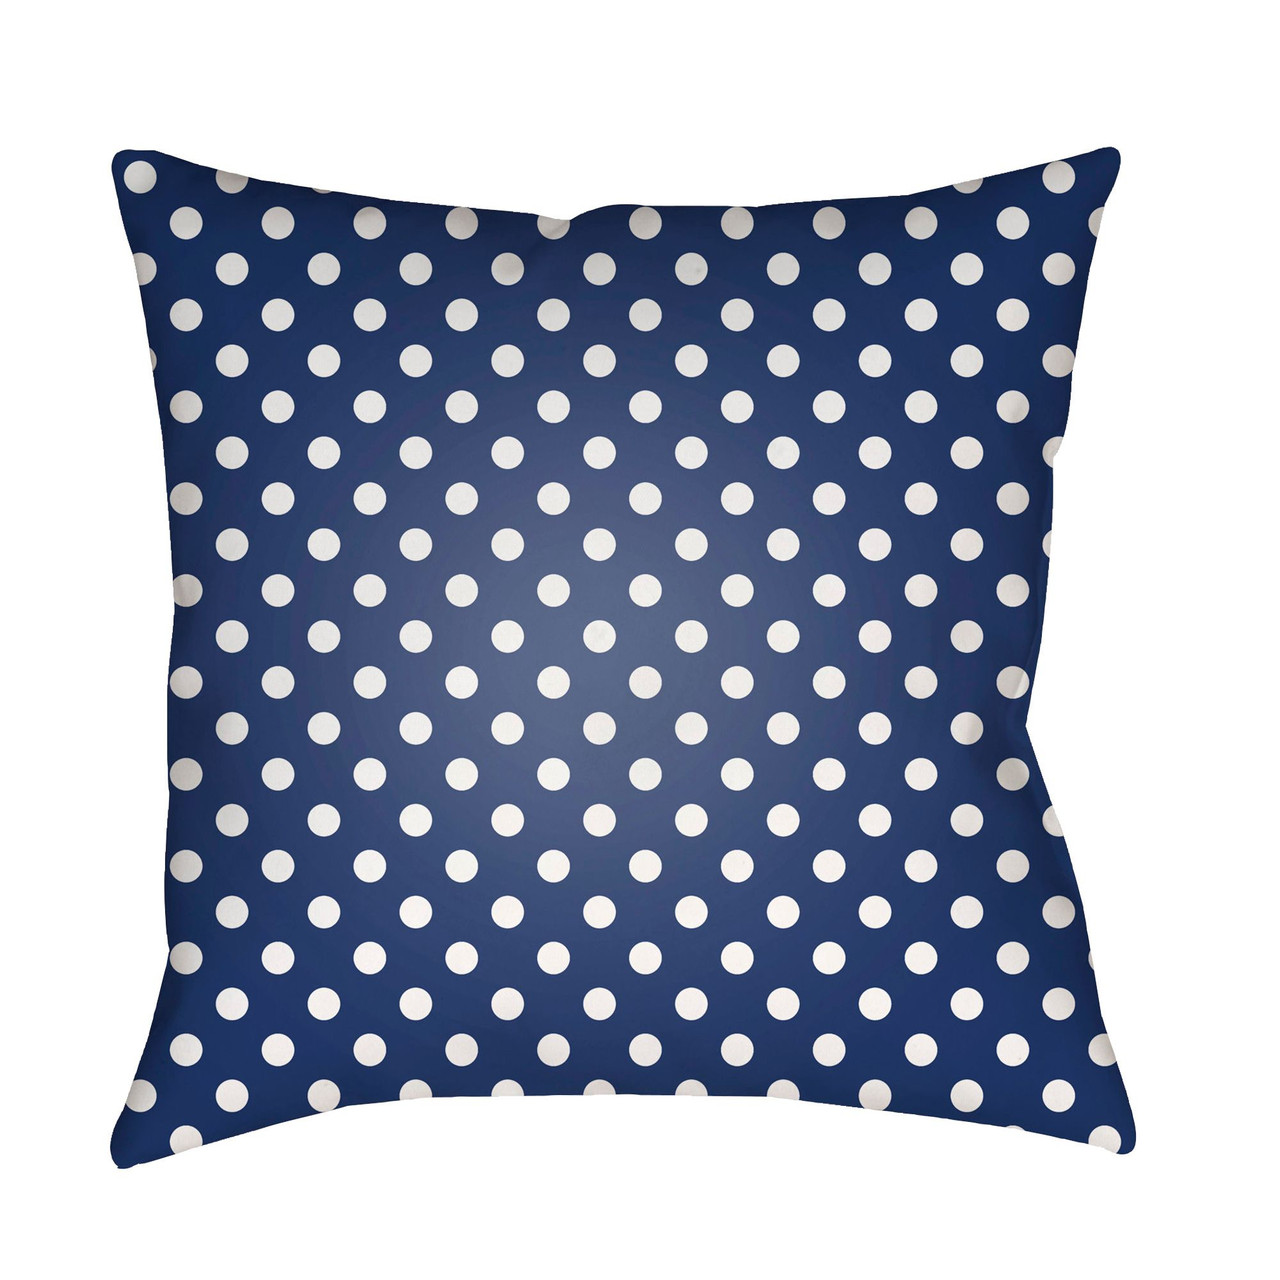 20 blue and white polka dots square throw pillow cover